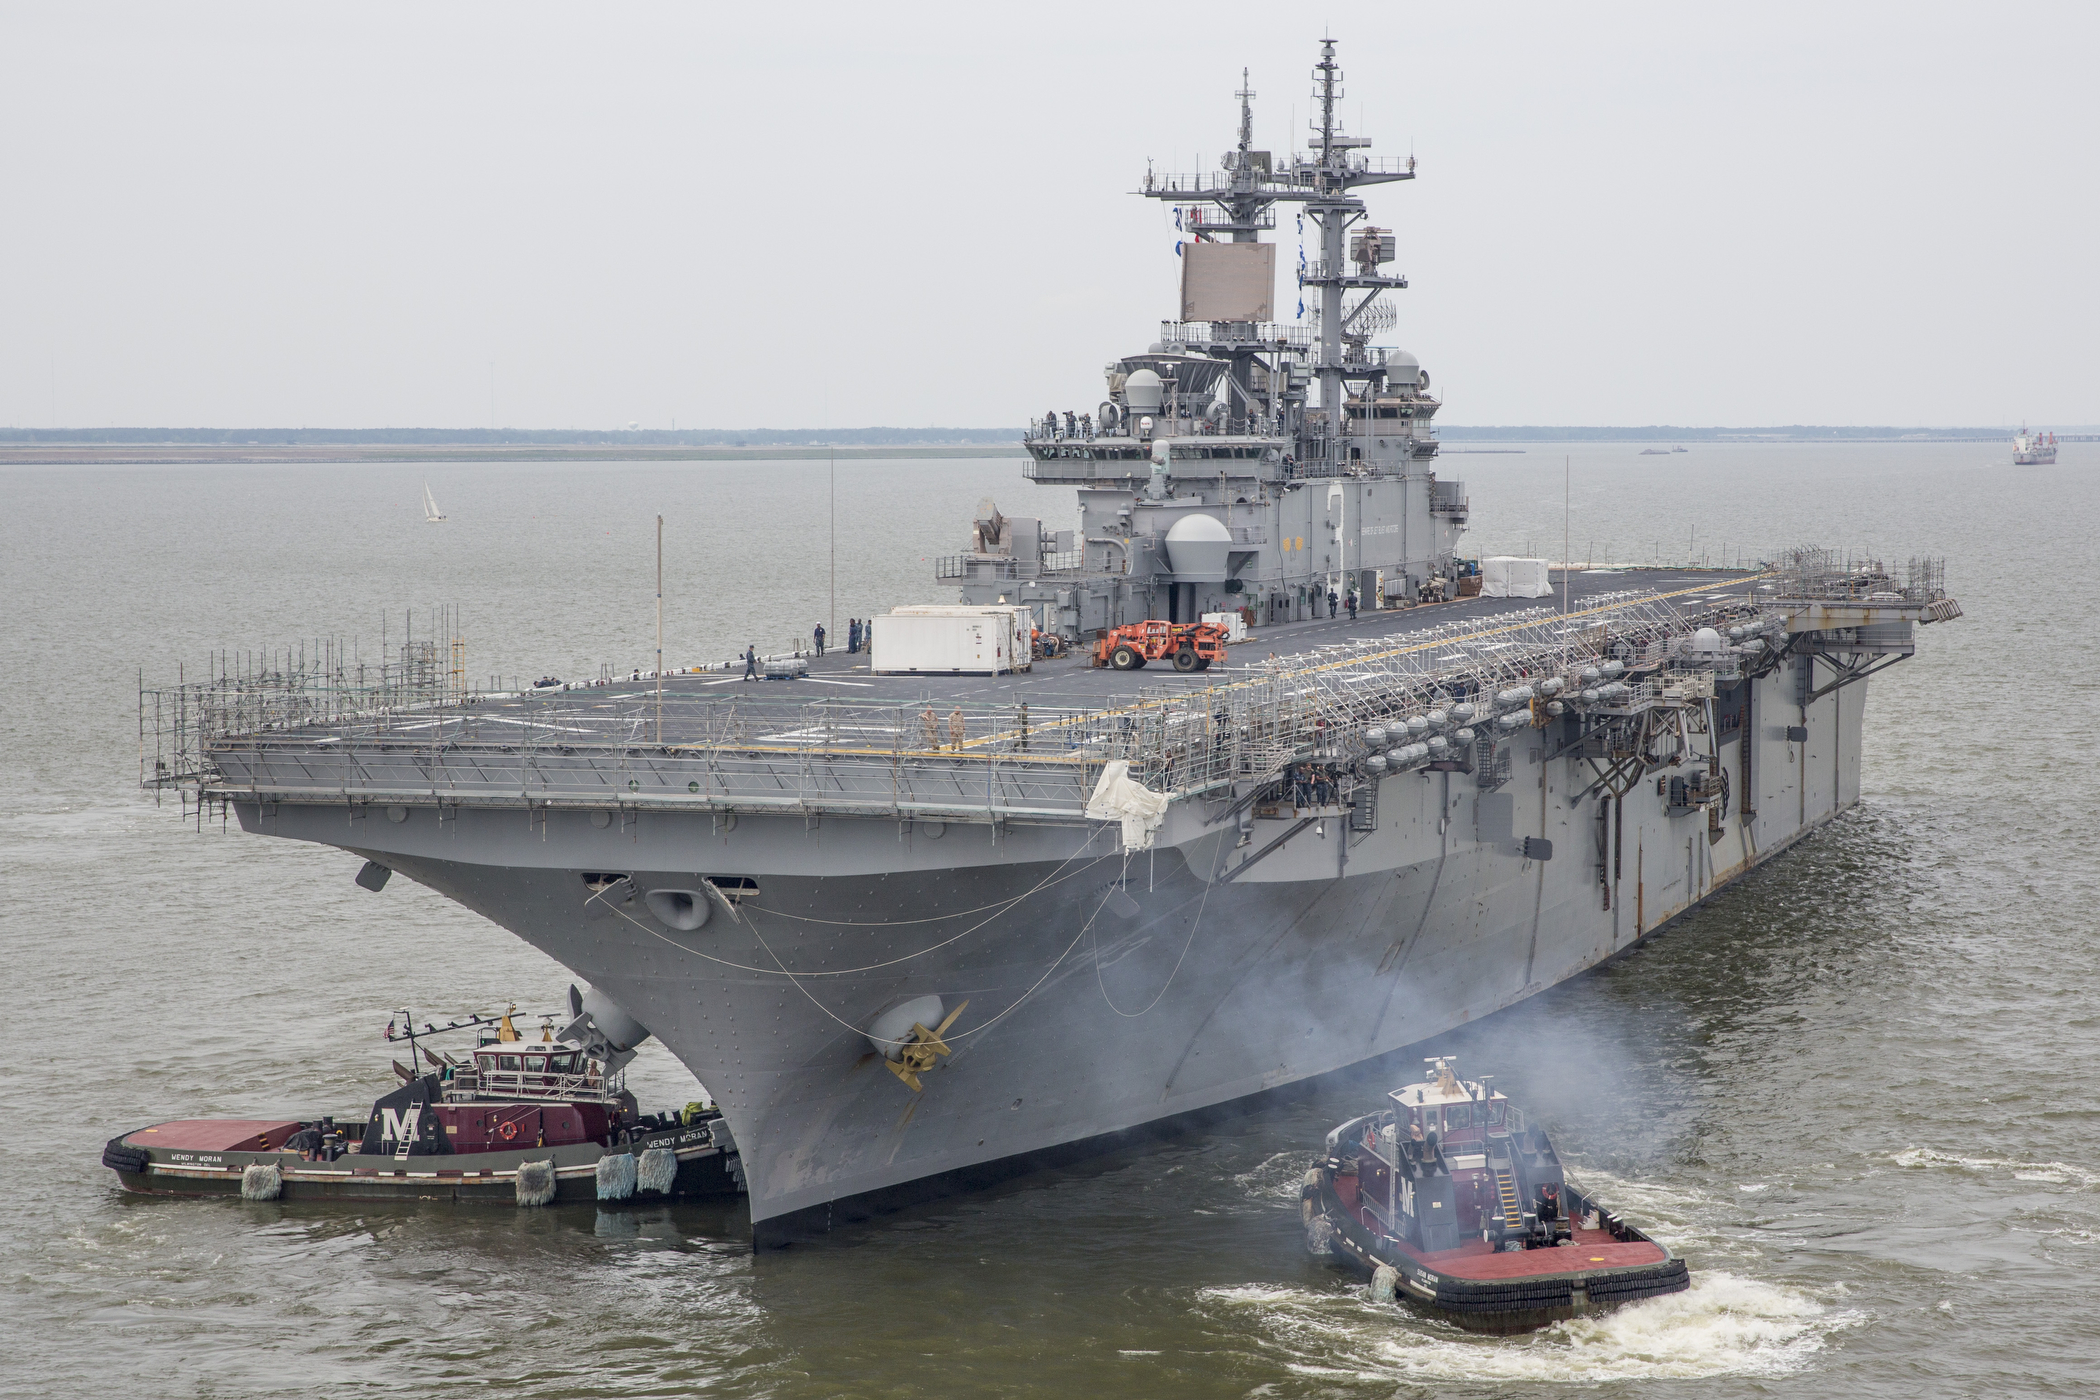 USS KEARSARGE LHD-3 am 10.05.2014 in Norfolk Bild: U.S. Navy